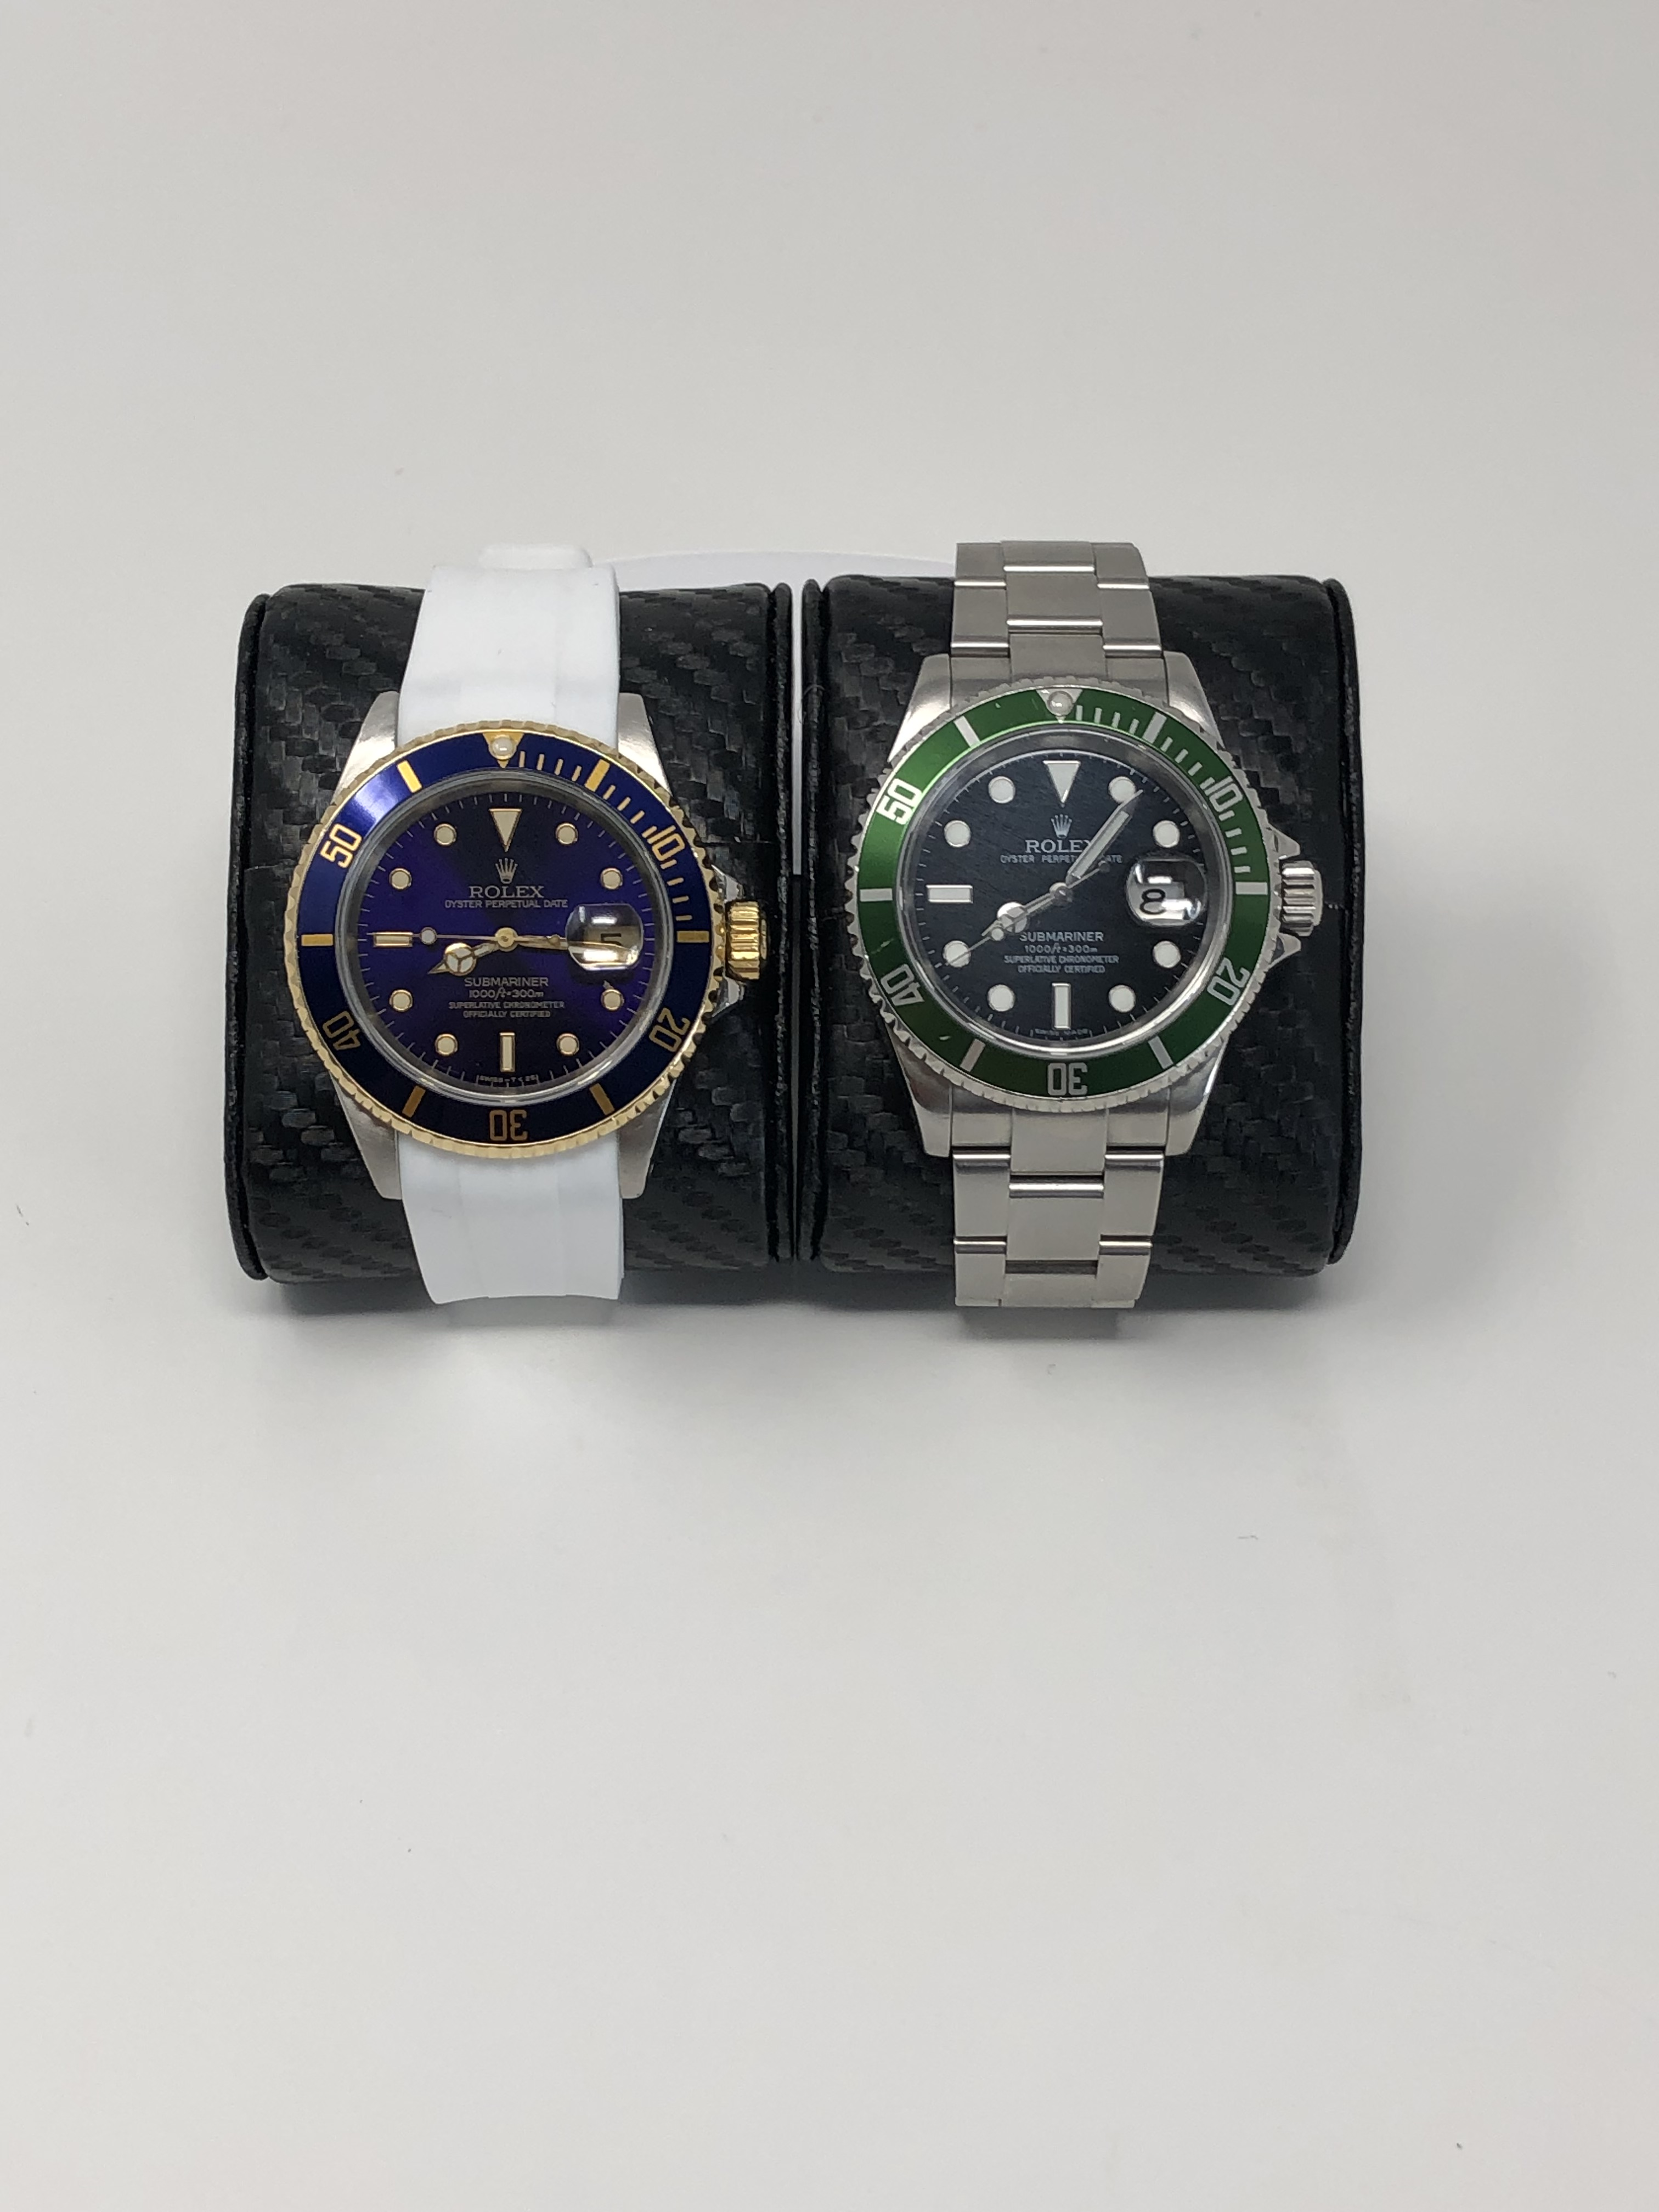 Submariner Rolexes 16613 versus 16610 Special Edition Men's Watches